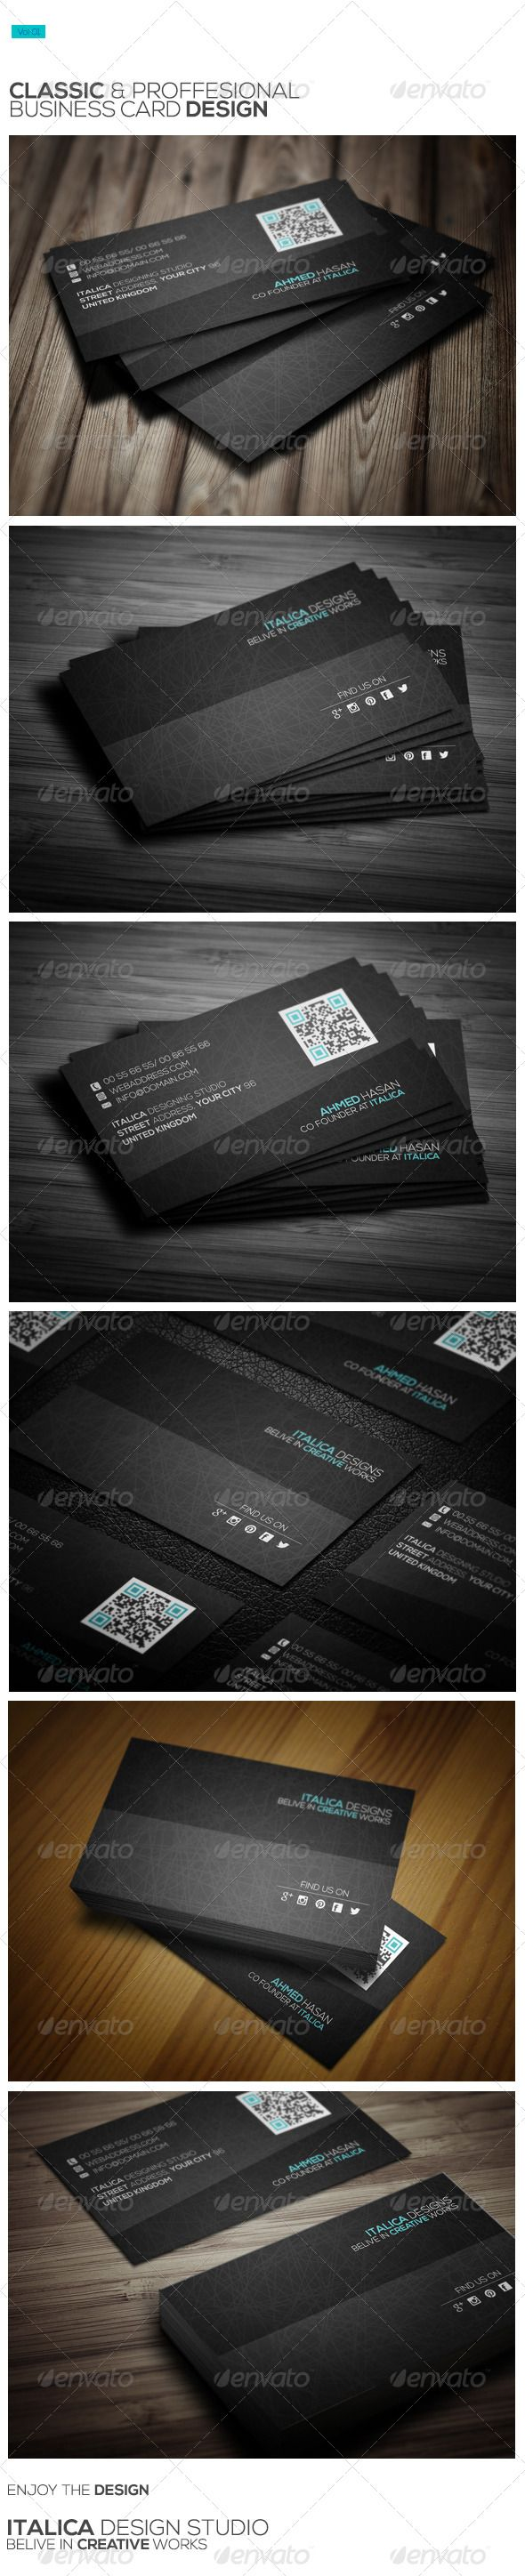 Pin by awesome graphic design on business card templates pinterest buy classic business card design by italicstudio on graphicriver classic business card design a modern business card design for you reheart Images